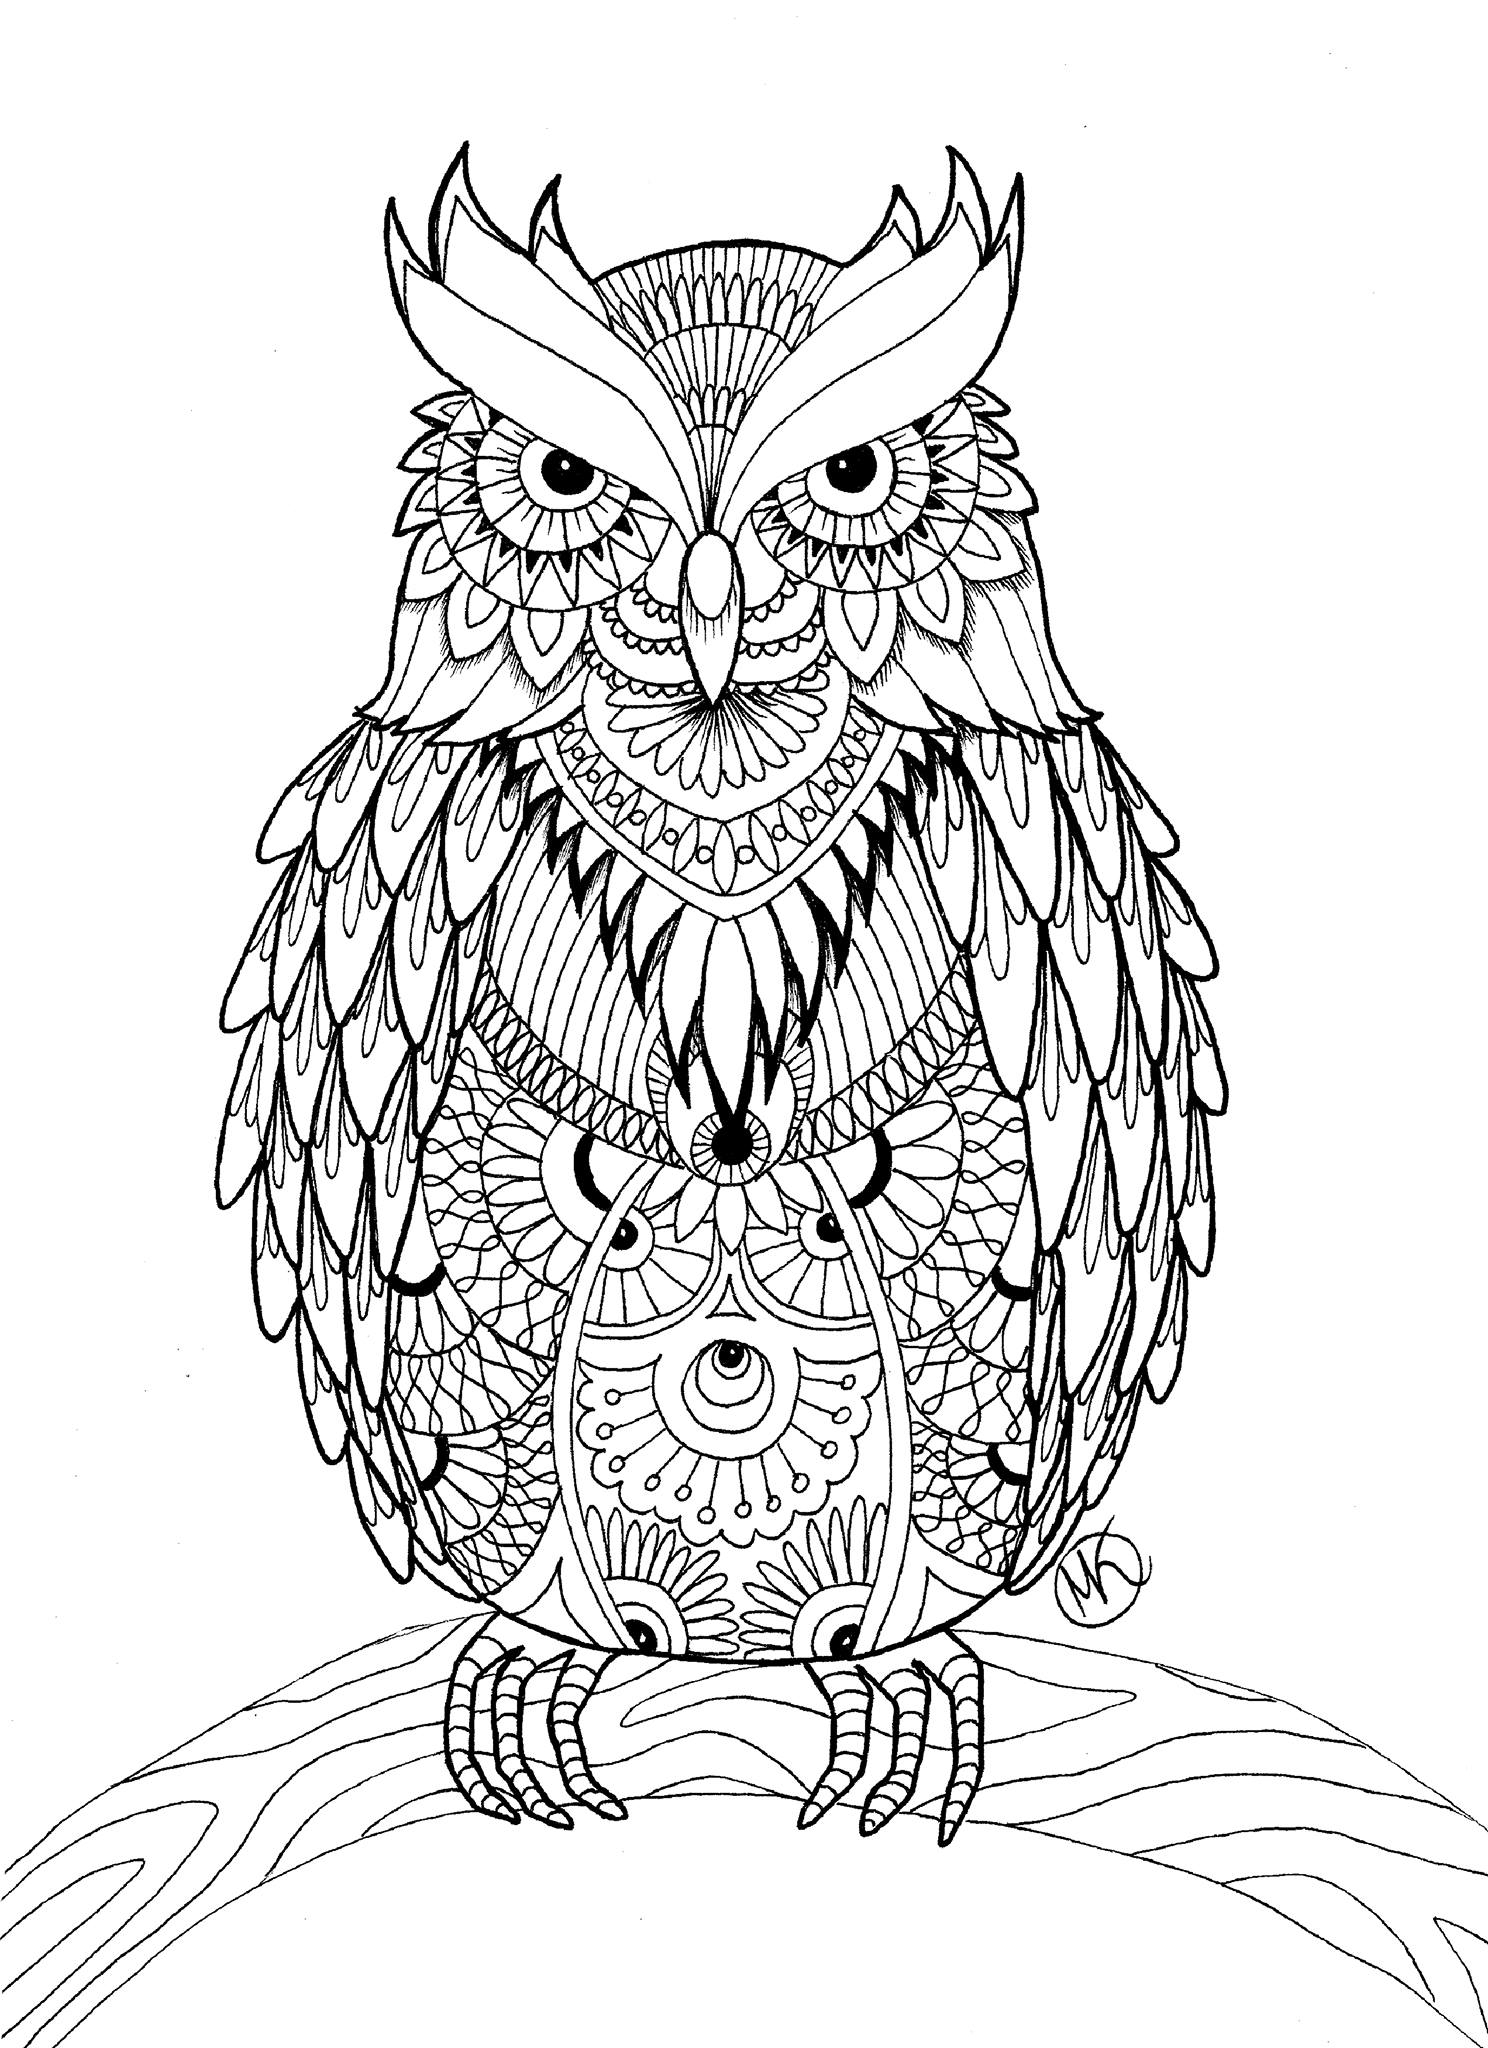 picture of owls to color baby owls coloring sheet to print picture of color owls to